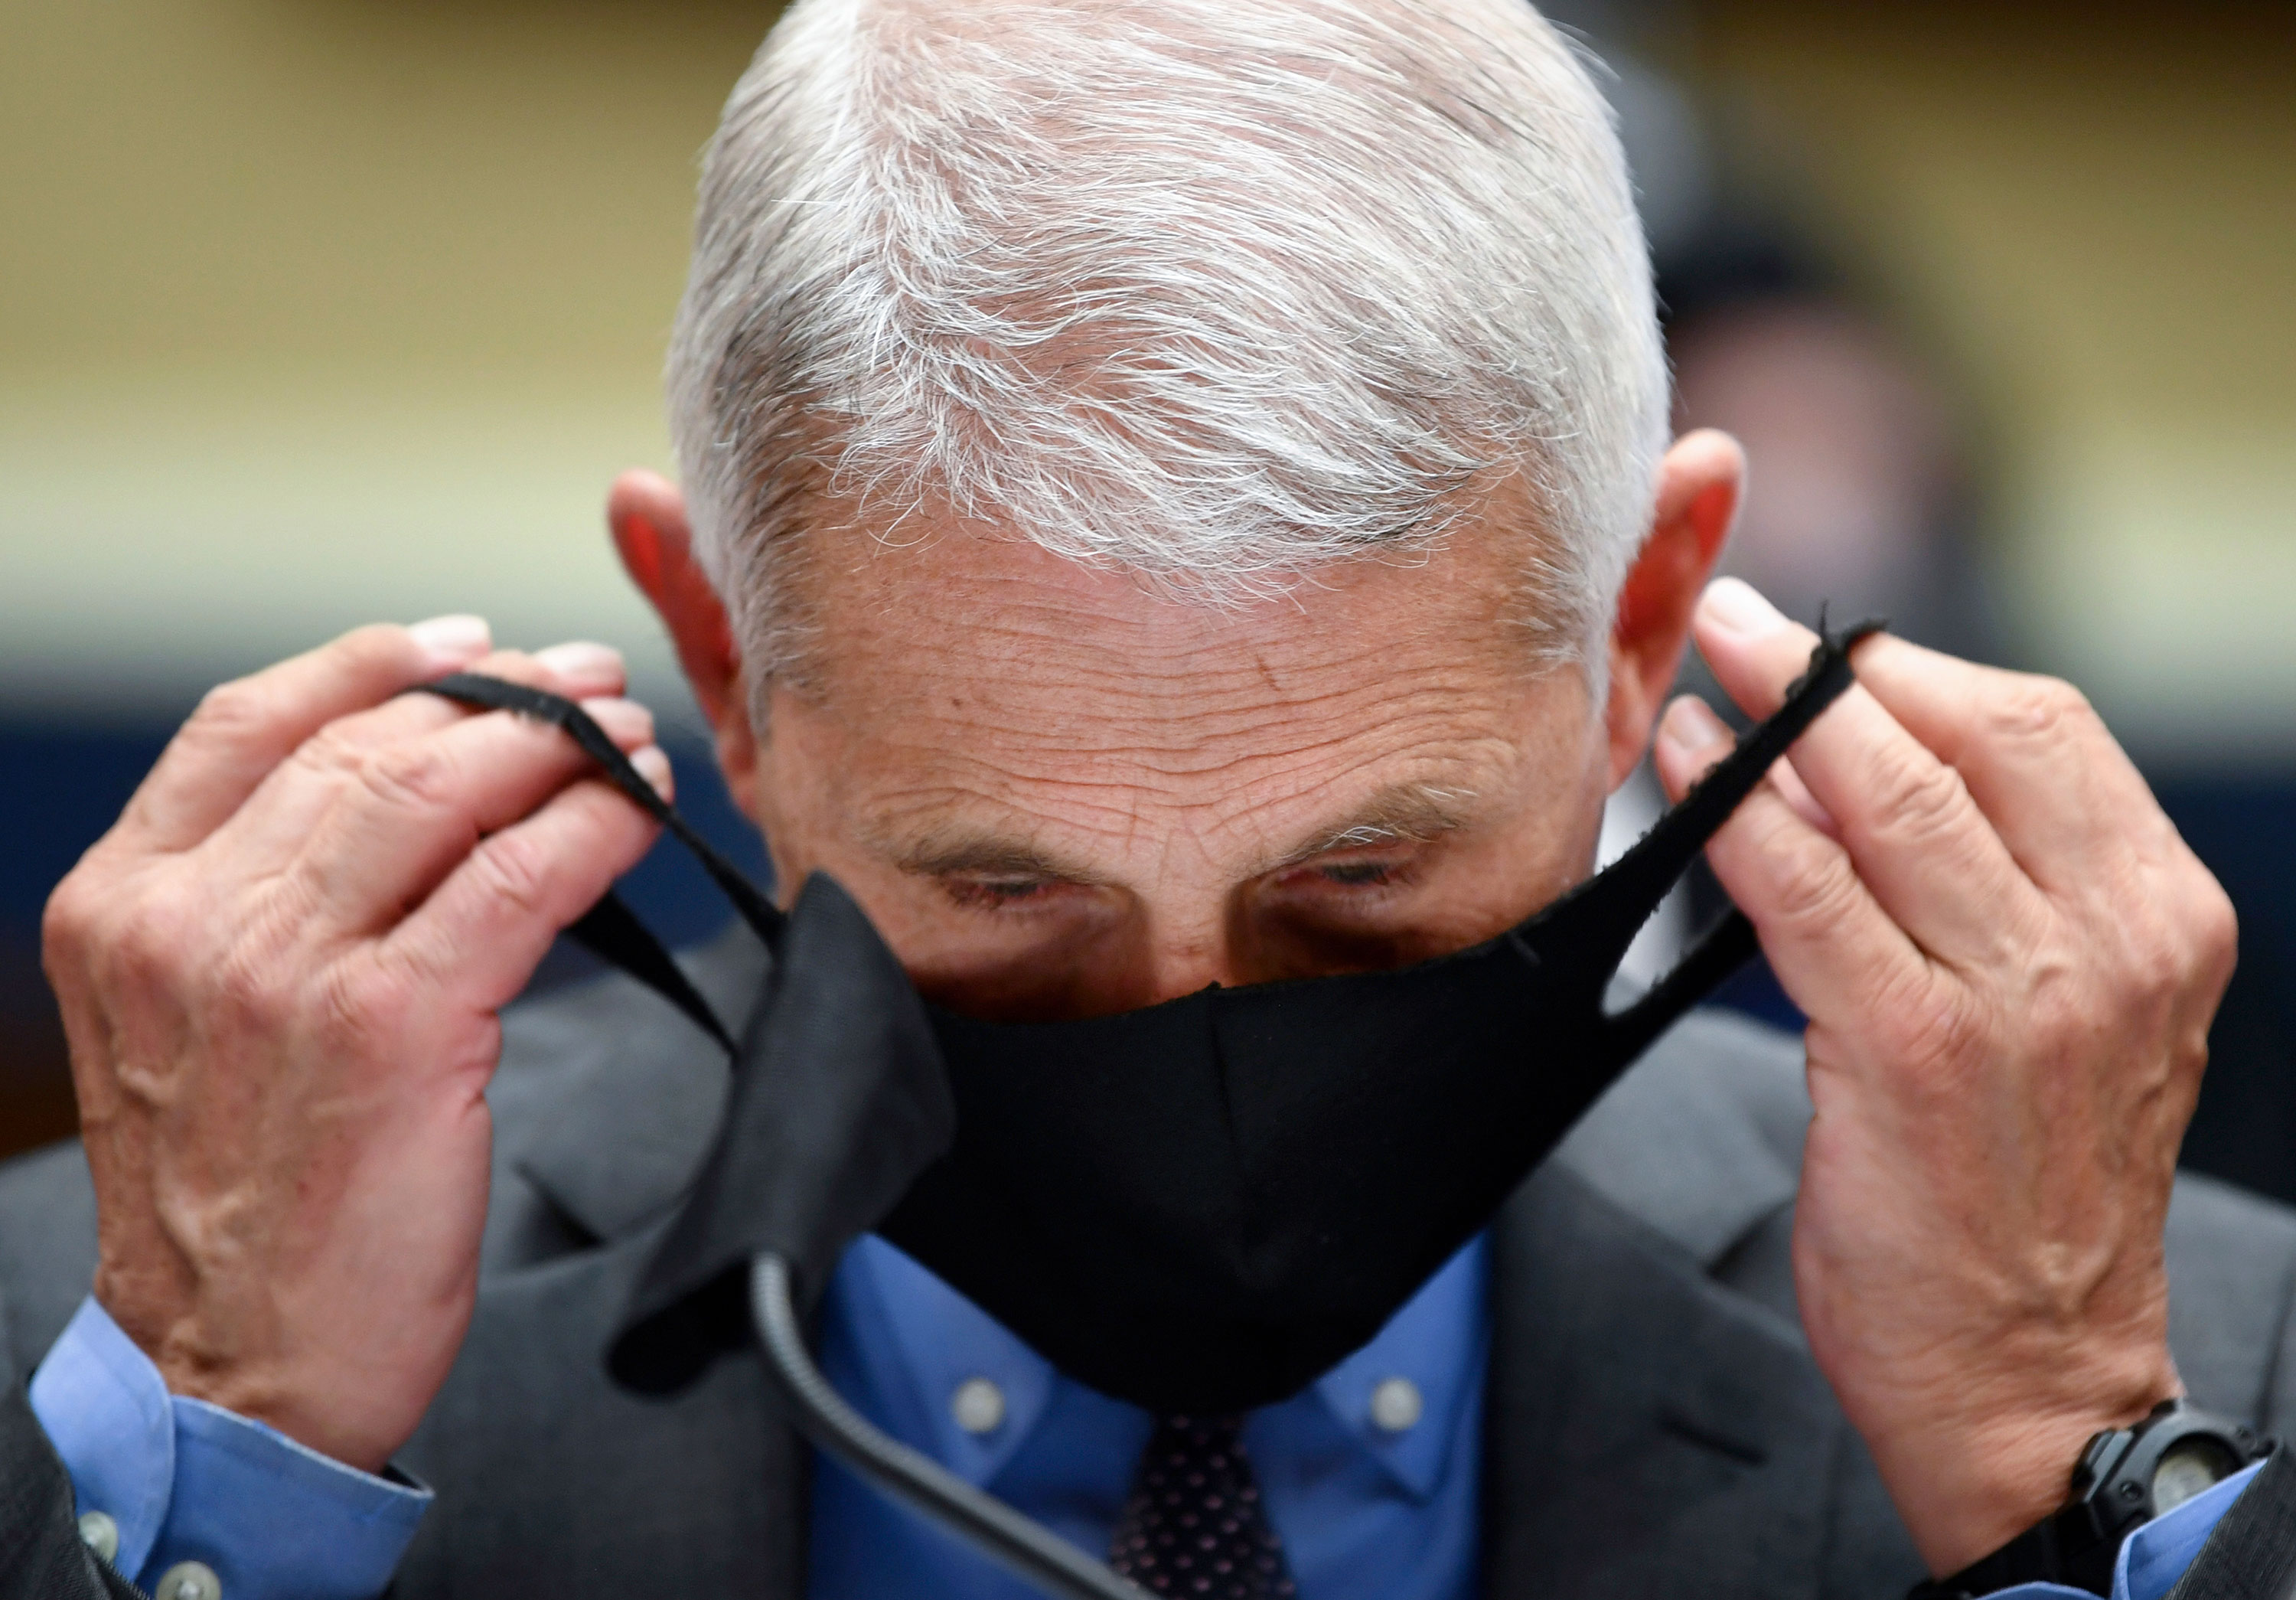 Dr. Anthony Fauci removes his face mask before testifying at a hearing on the Trump administration's response to the Covid-19 pandemic on June 23 in Washington.